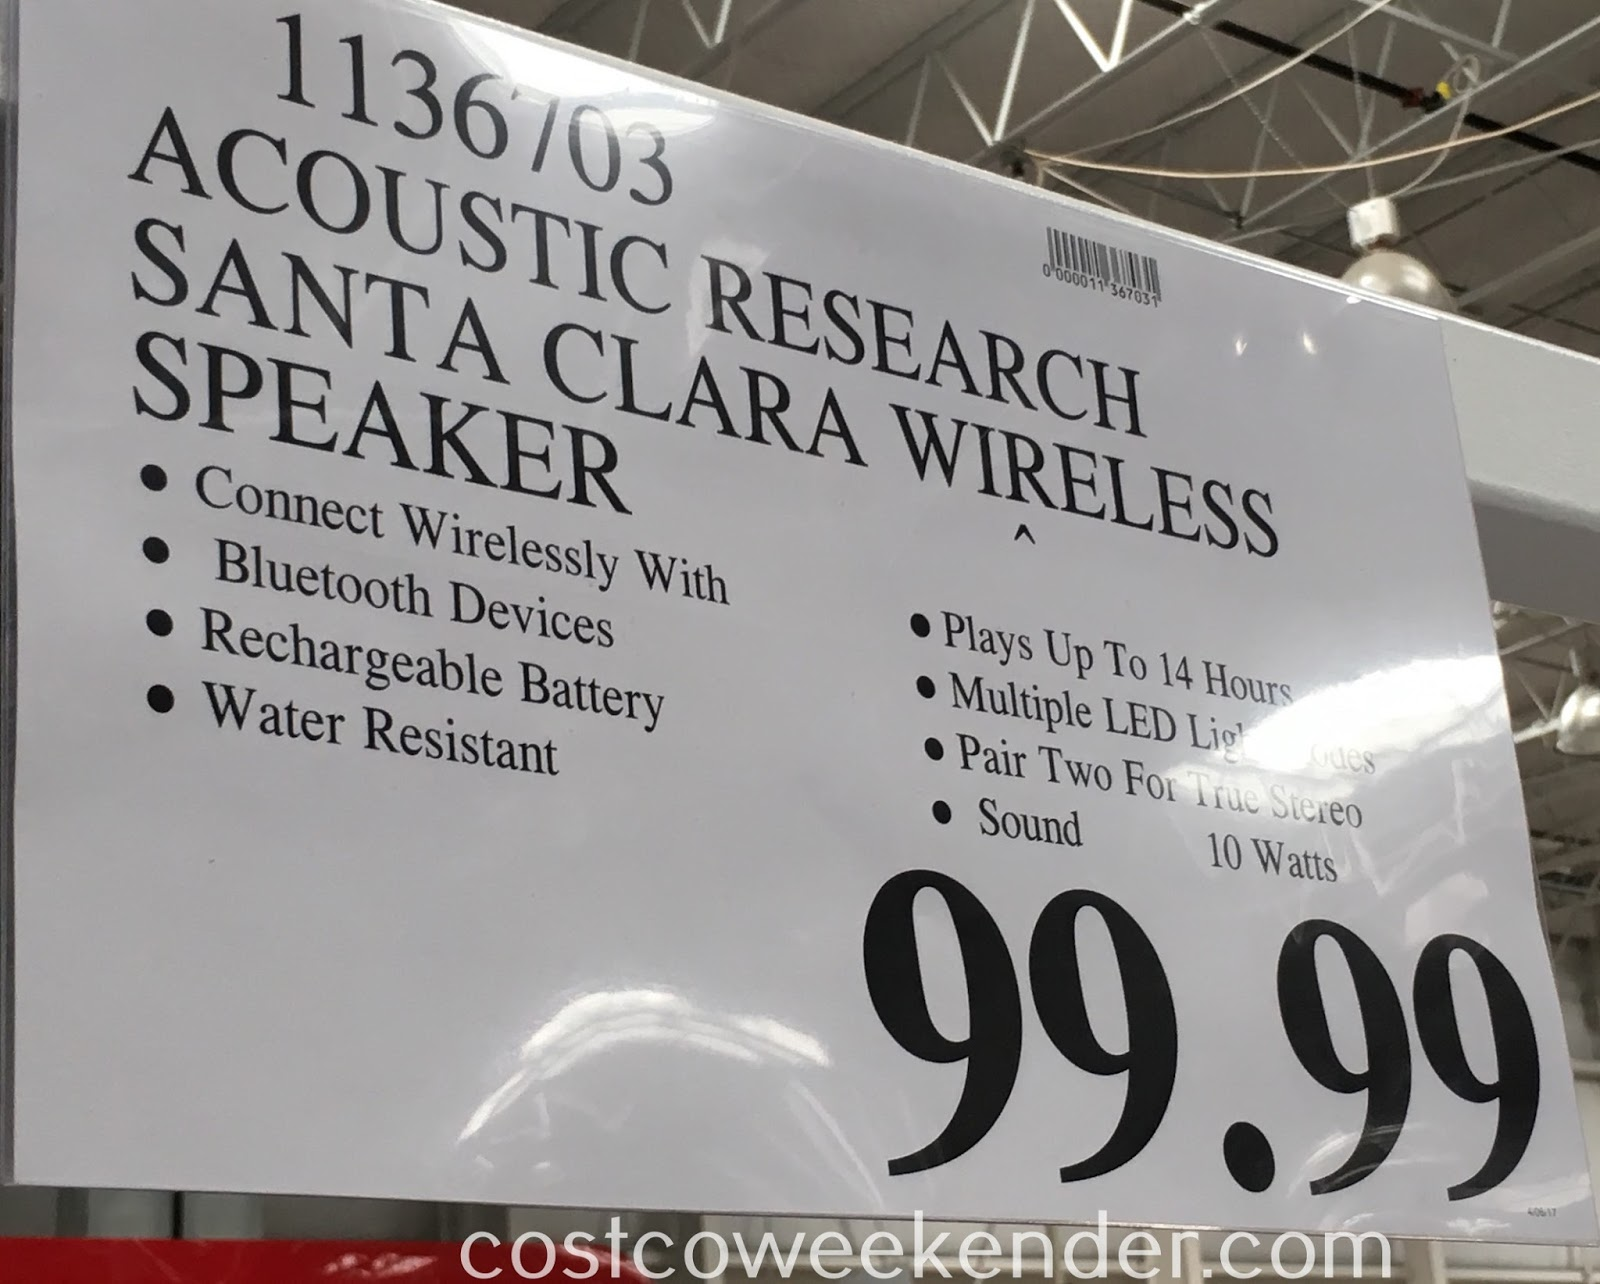 Deal for the Acoustic Research Santa Clara Portable Wireless Speaker at Costco